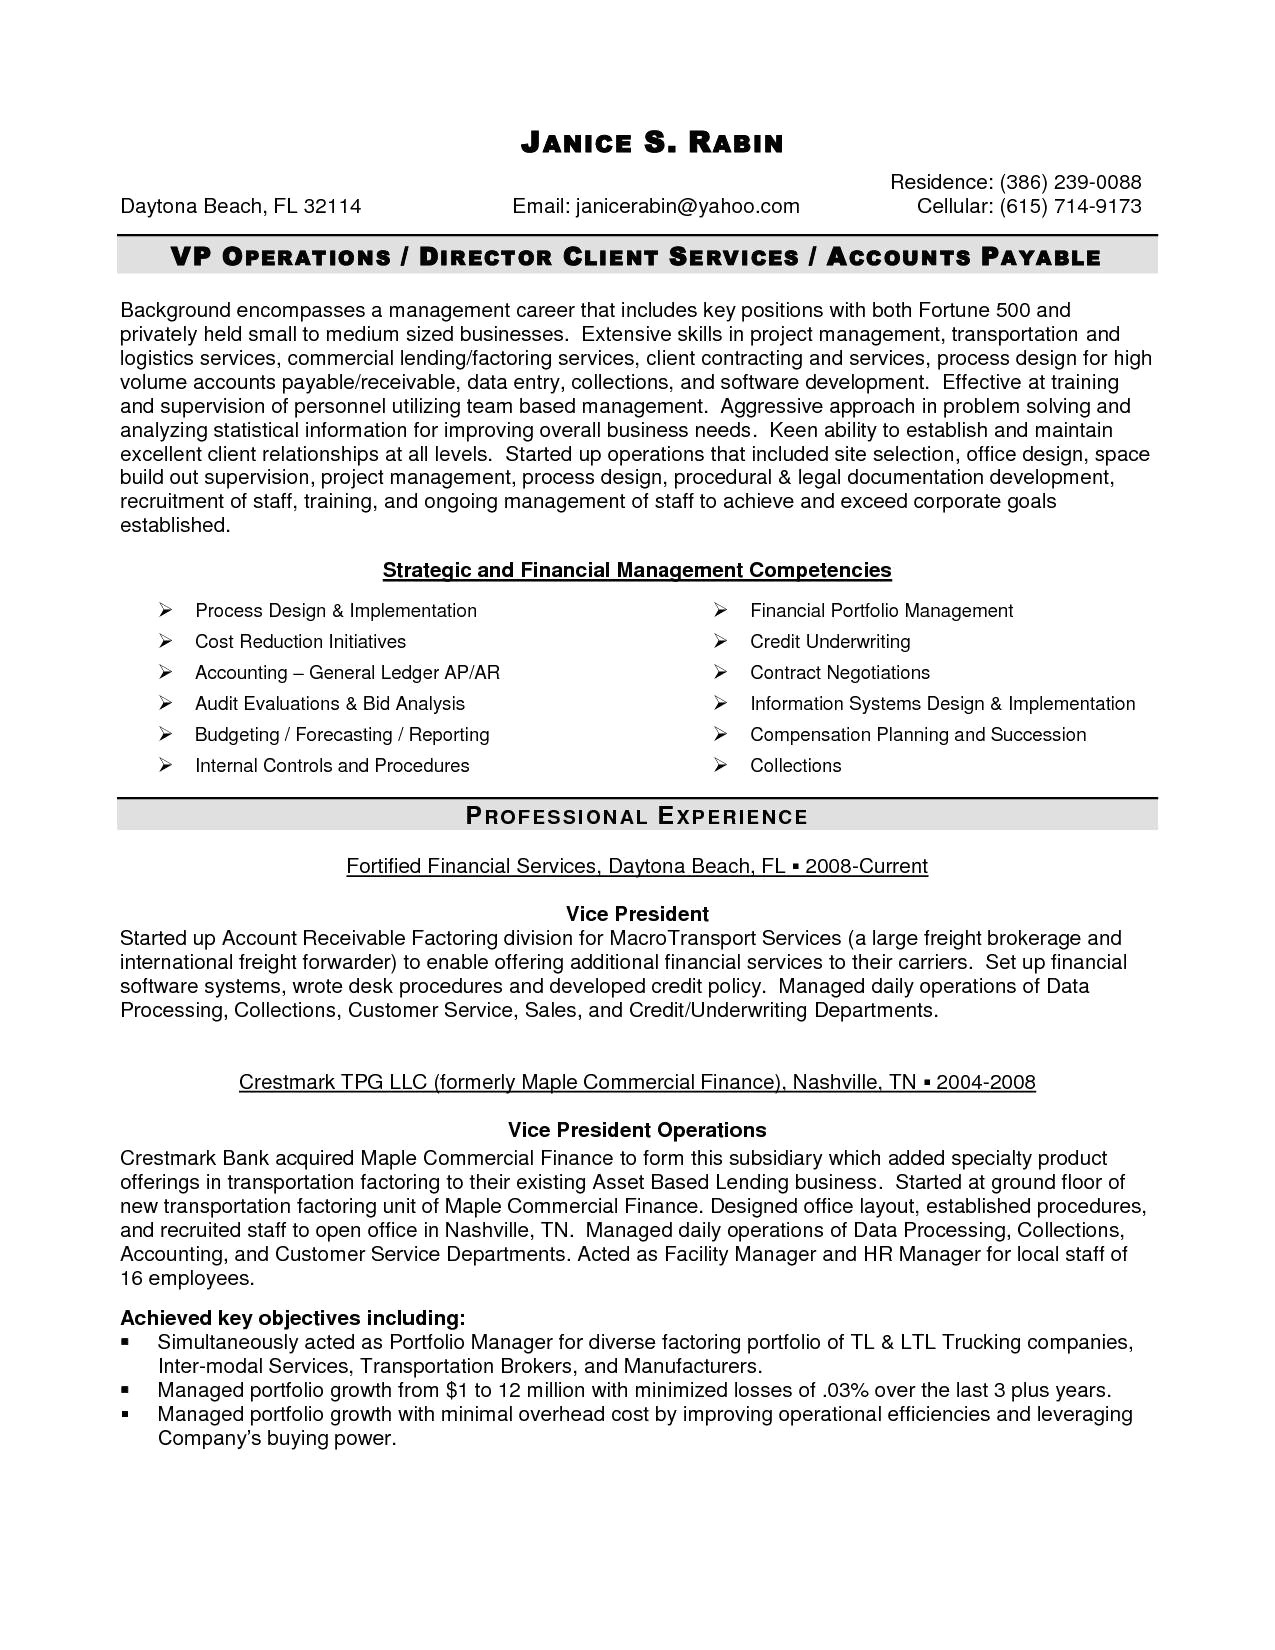 financial services resume template Collection-Reseume Templates Fresh Resume Templates with formatted Resume 0d 17-b